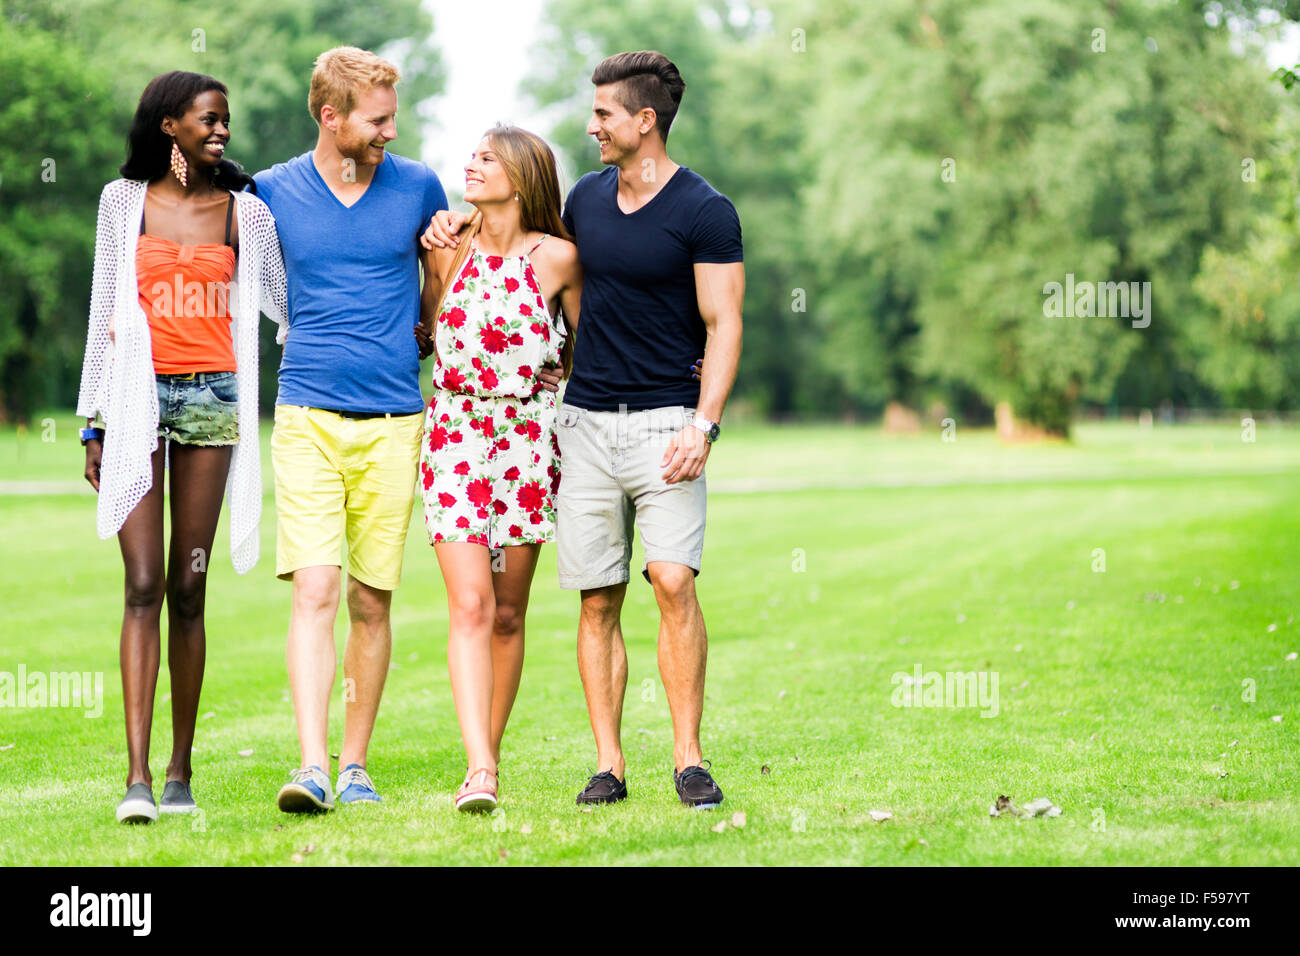 Cheerful friends walking in nature outdoors and having a good time - Stock Image